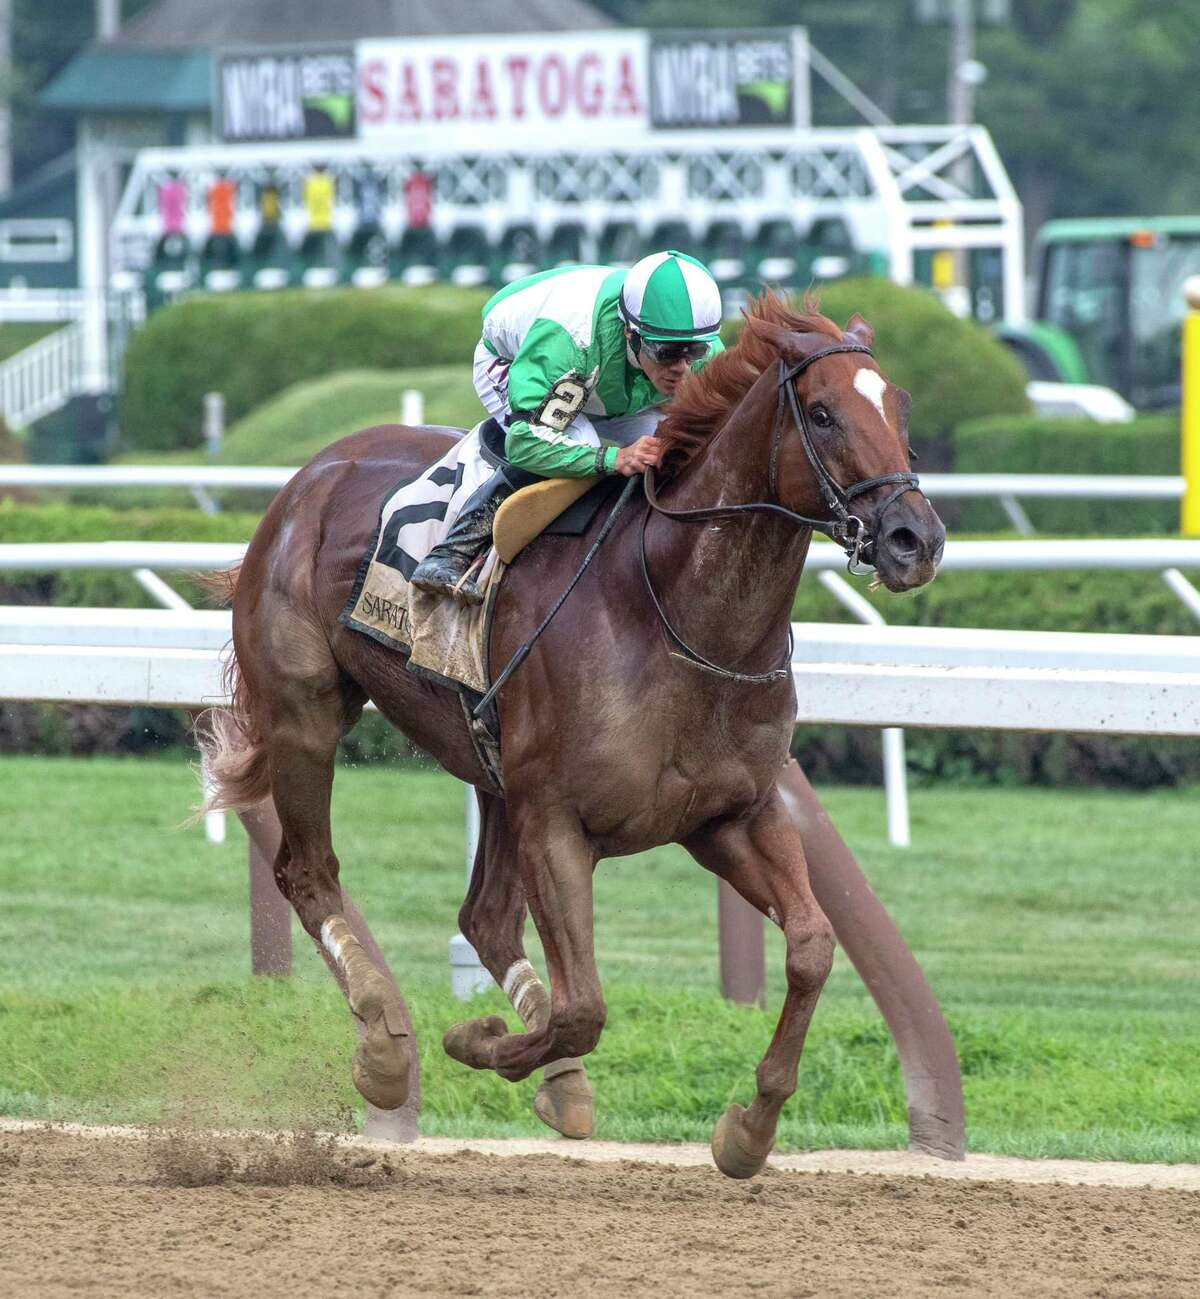 Mr. Buff with jockey Junior Alvarado makes it an easy win in the 38th running of the Evan Shipman the Saratoga Race Course Wednesday Aug. 7, 2019 in Saratoga Springs, N.Y. Photo Special to the Times Union by Skip Dickstein